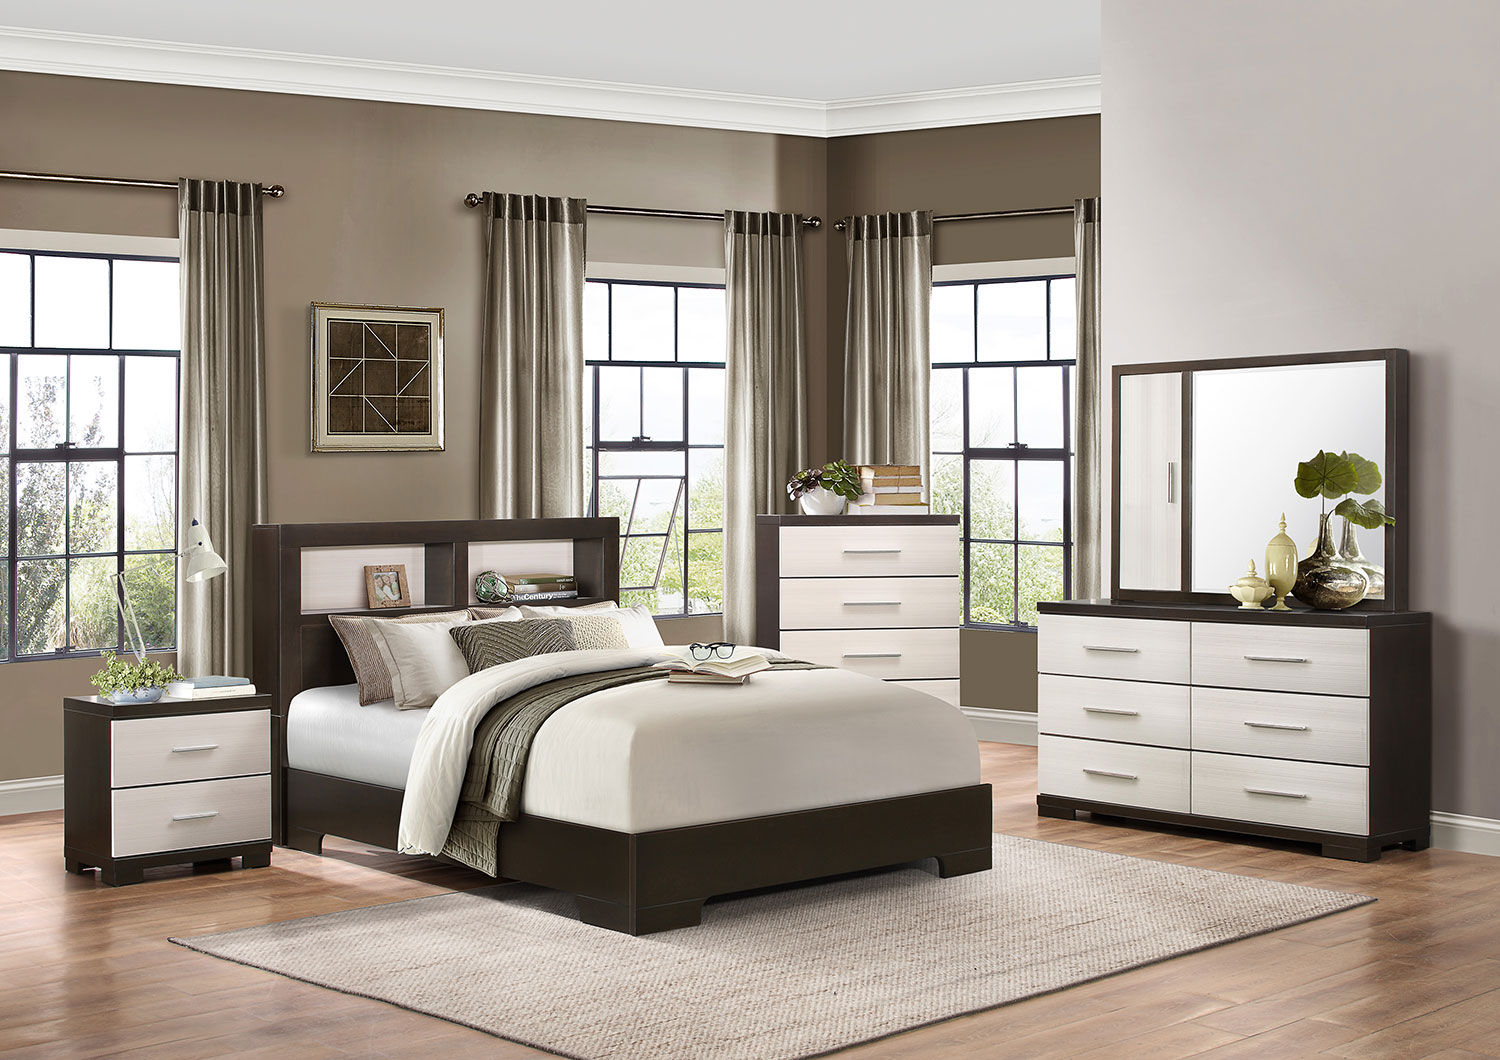 Homelegance Pell Low Profile Storage Bookcase Bedroom Set   Two Tone  Espresso/White